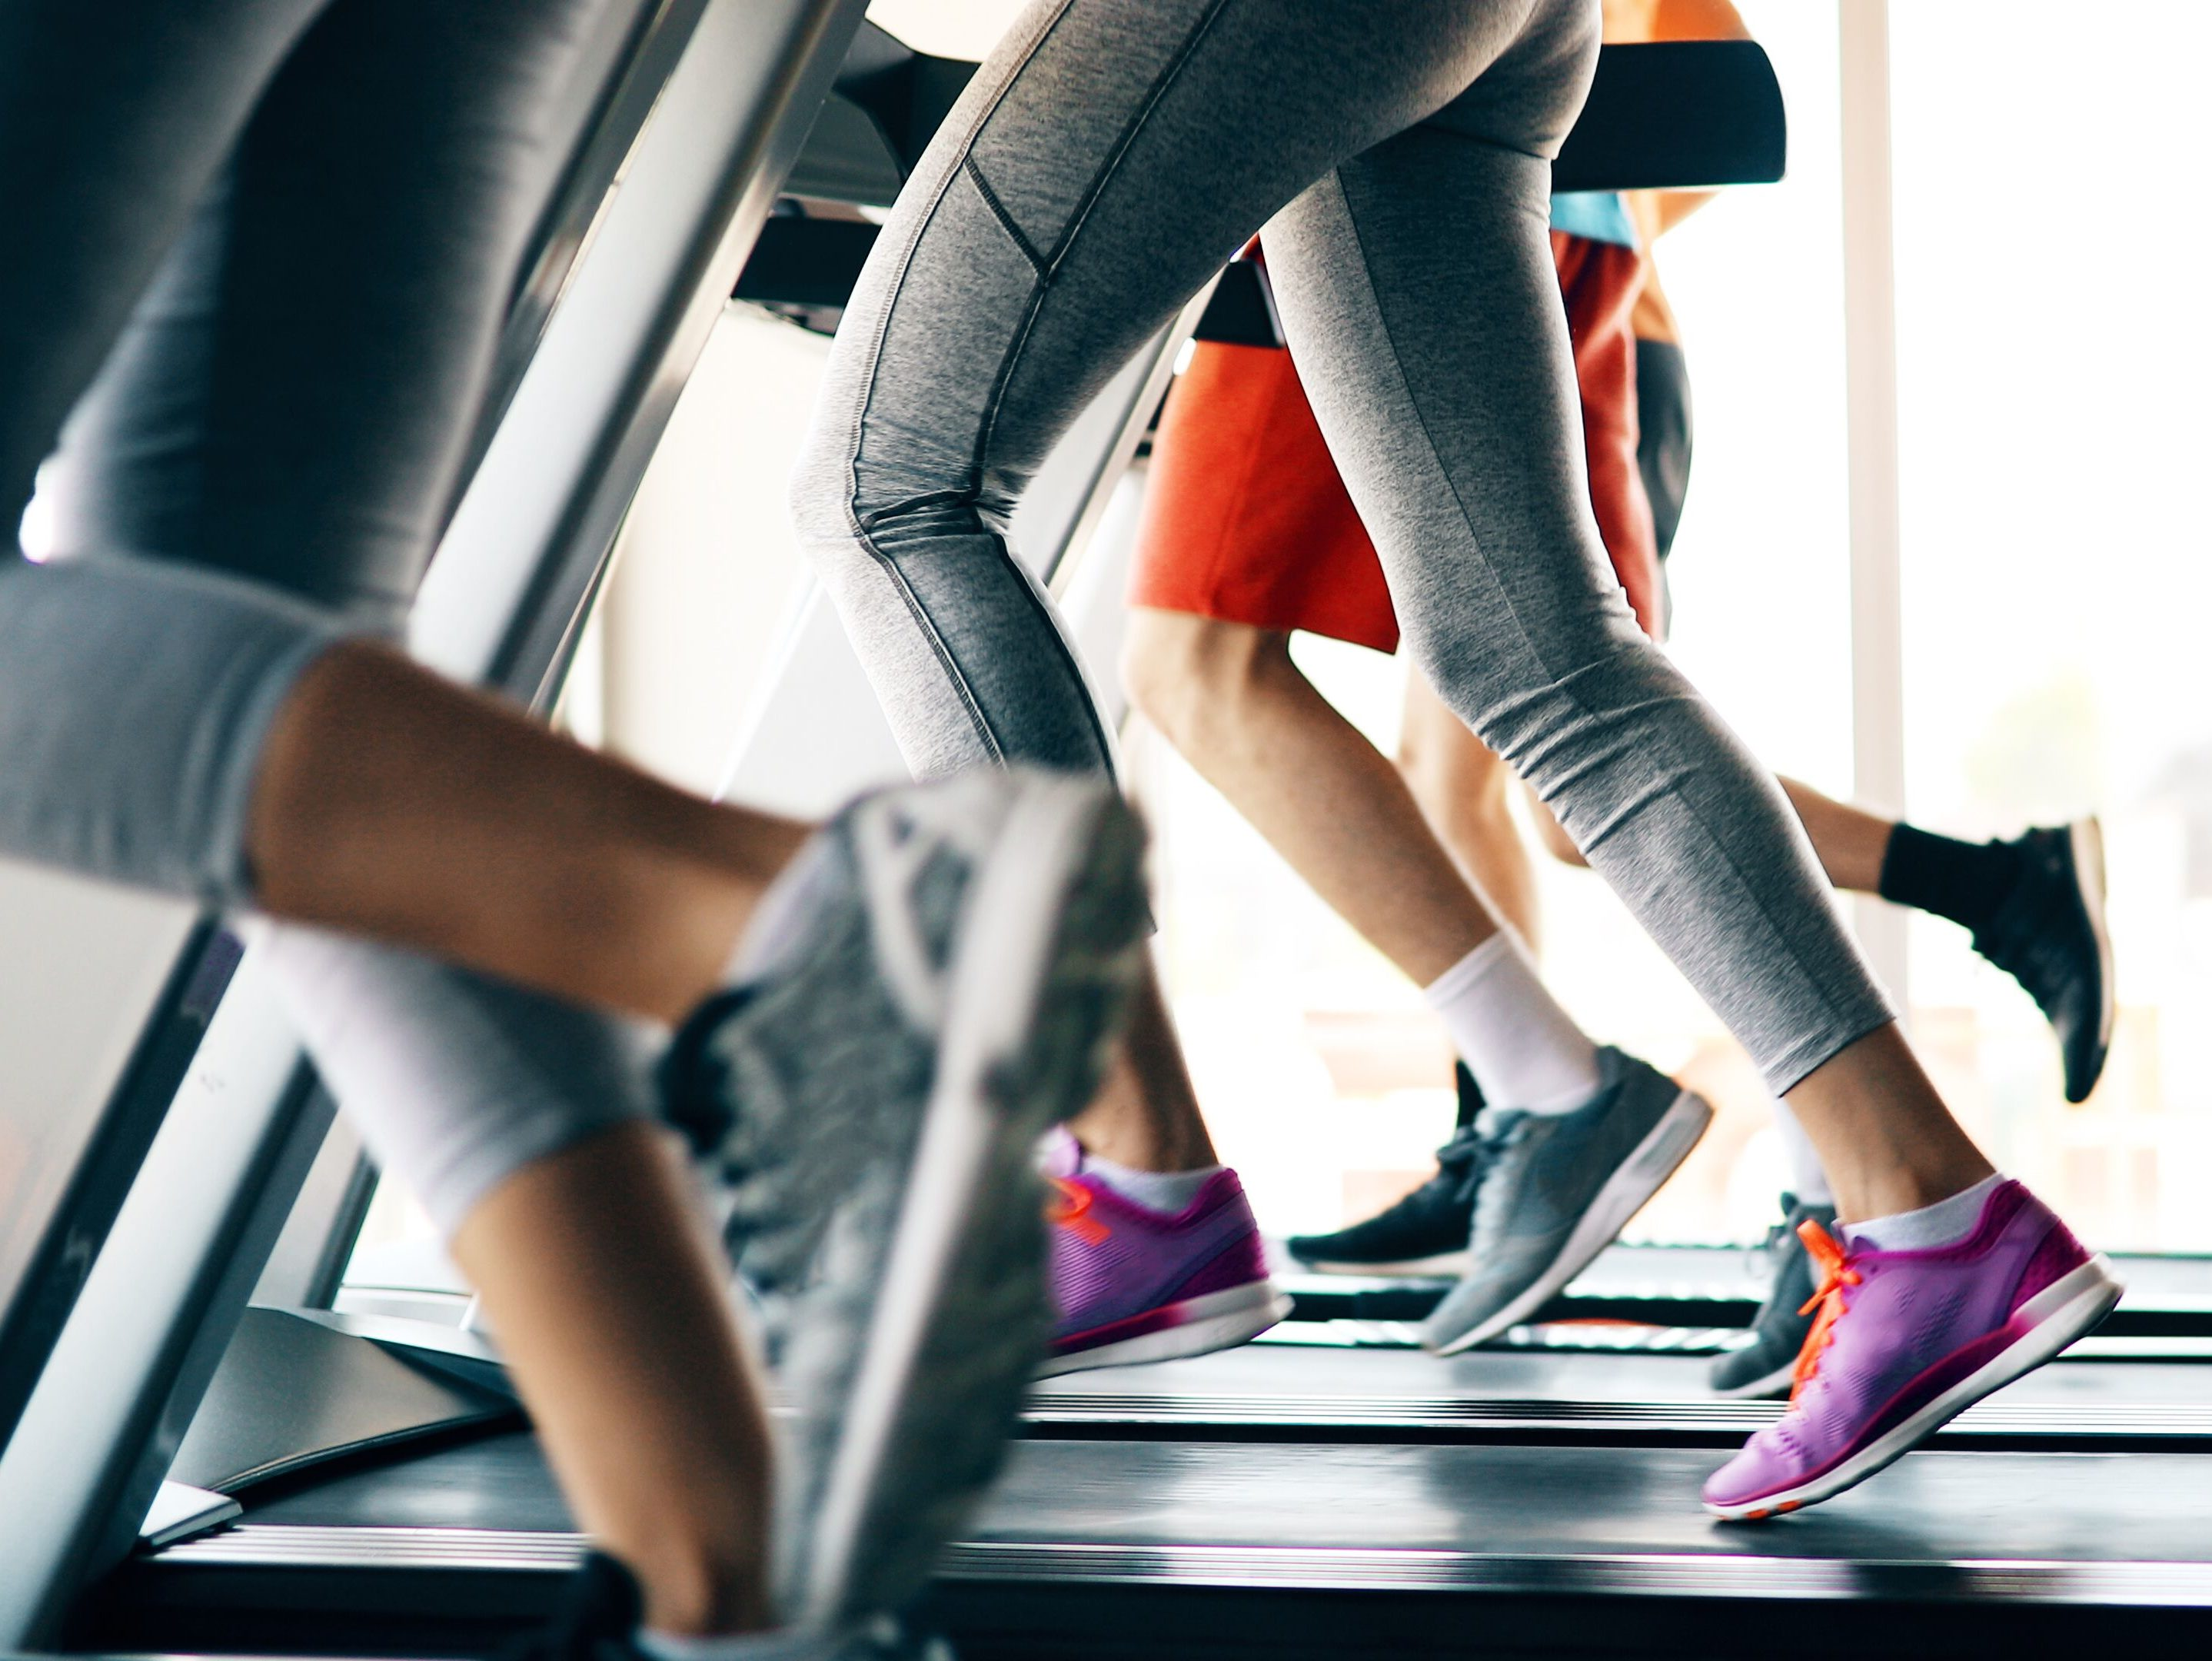 Row of treadmills seen from users' waist down. All have runners using treadmills in exercise gear and tennis shoes.